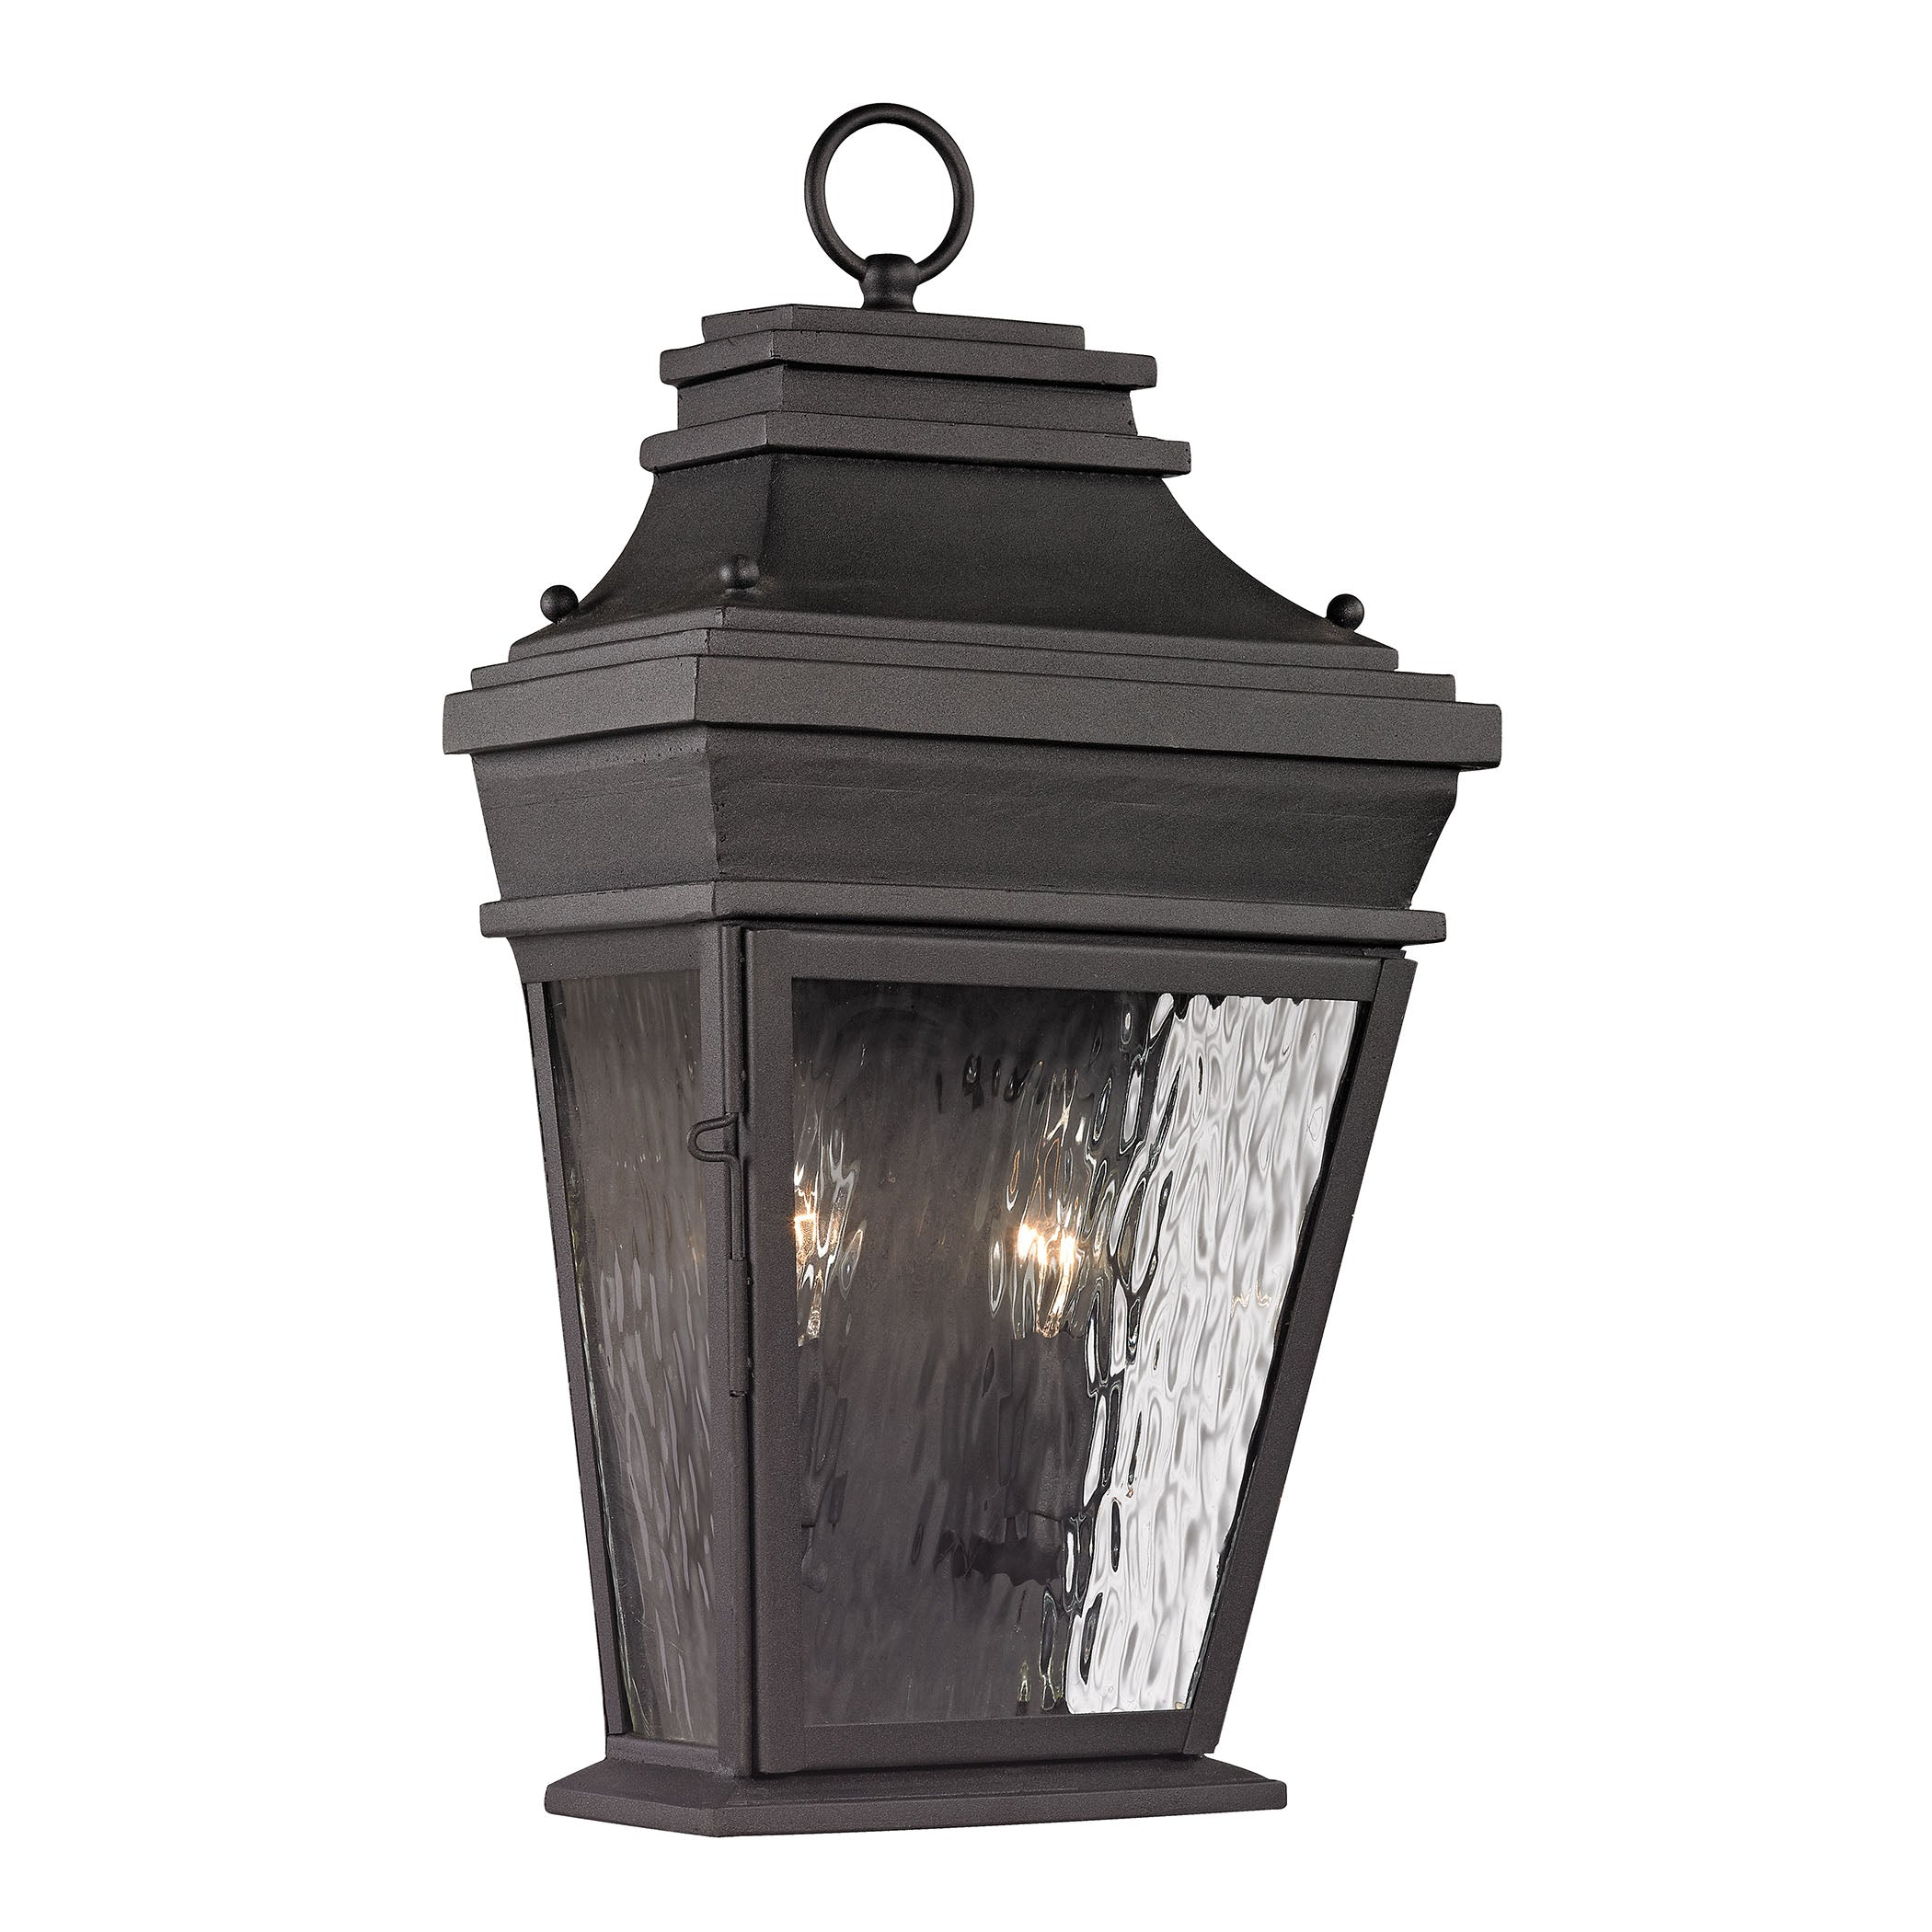 ELK Lighting  Forged Provincial Collection 2 light outdoor sconce in Charcoal